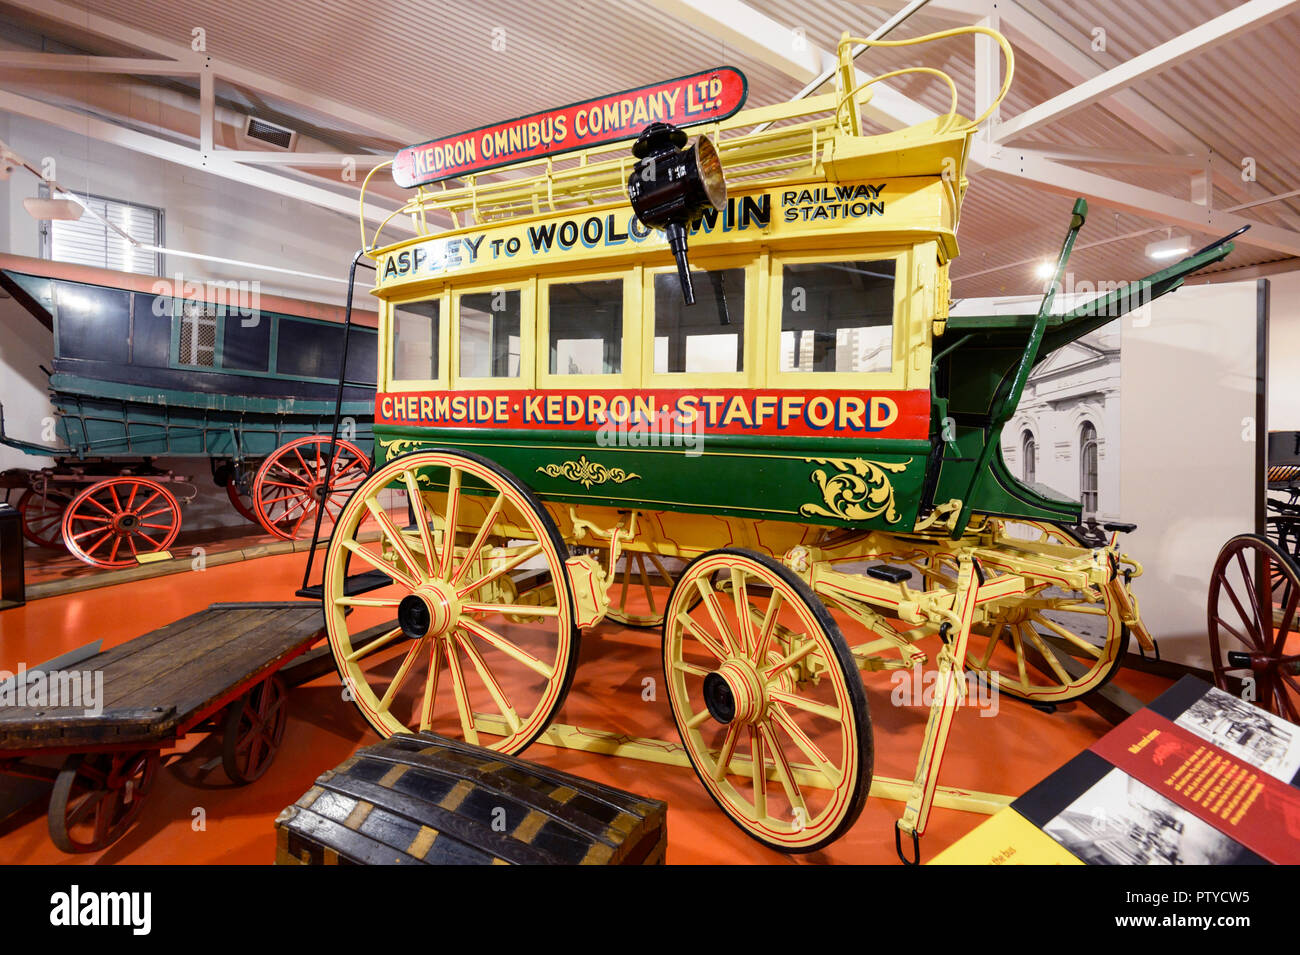 Old Omnibus on display at the Cobb & Co Museum, Toowoomba, Southern Queensland, QLD, Australia - Stock Image